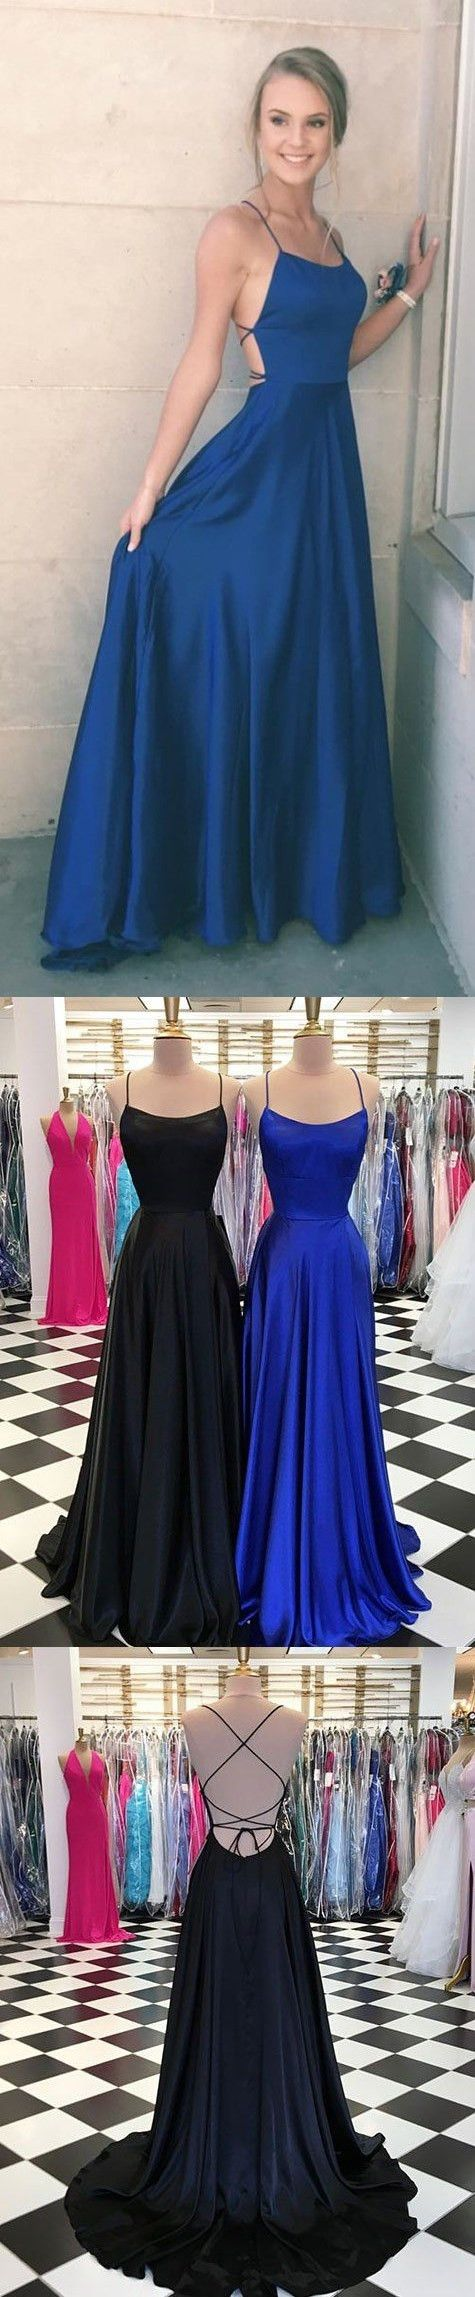 straps navy blue long prom dress simple long prom dress party